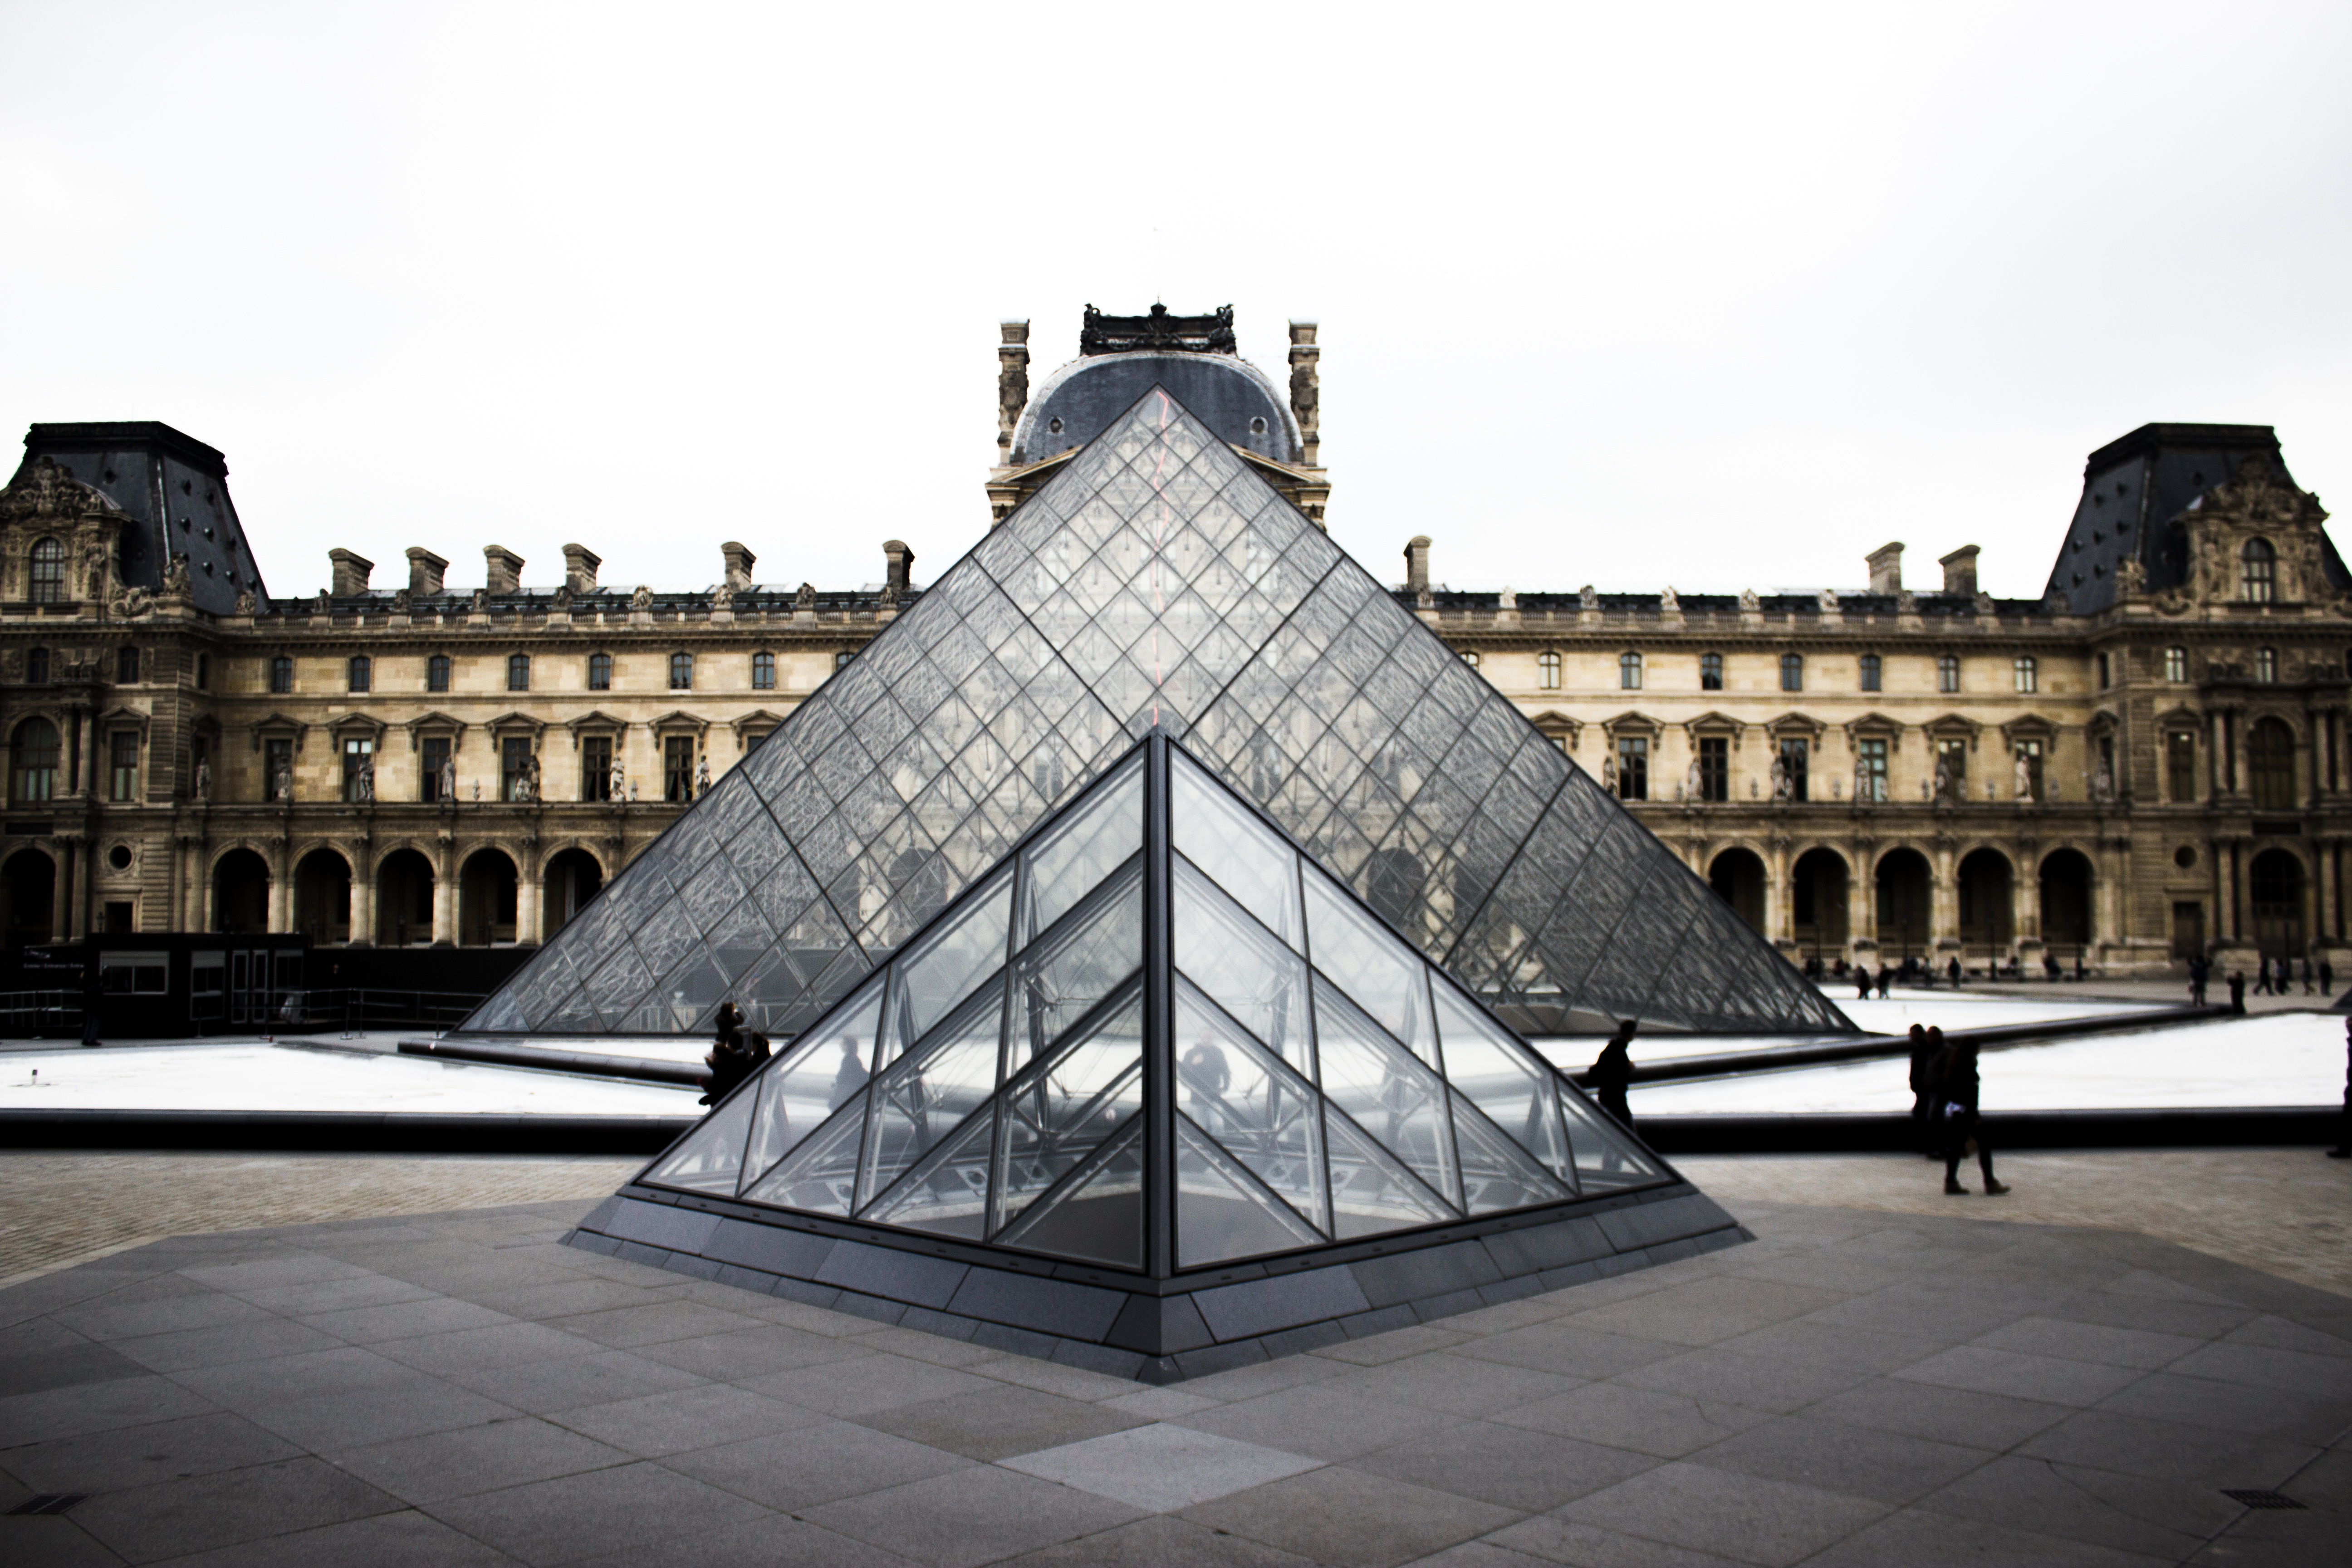 louvre paris on overcast day